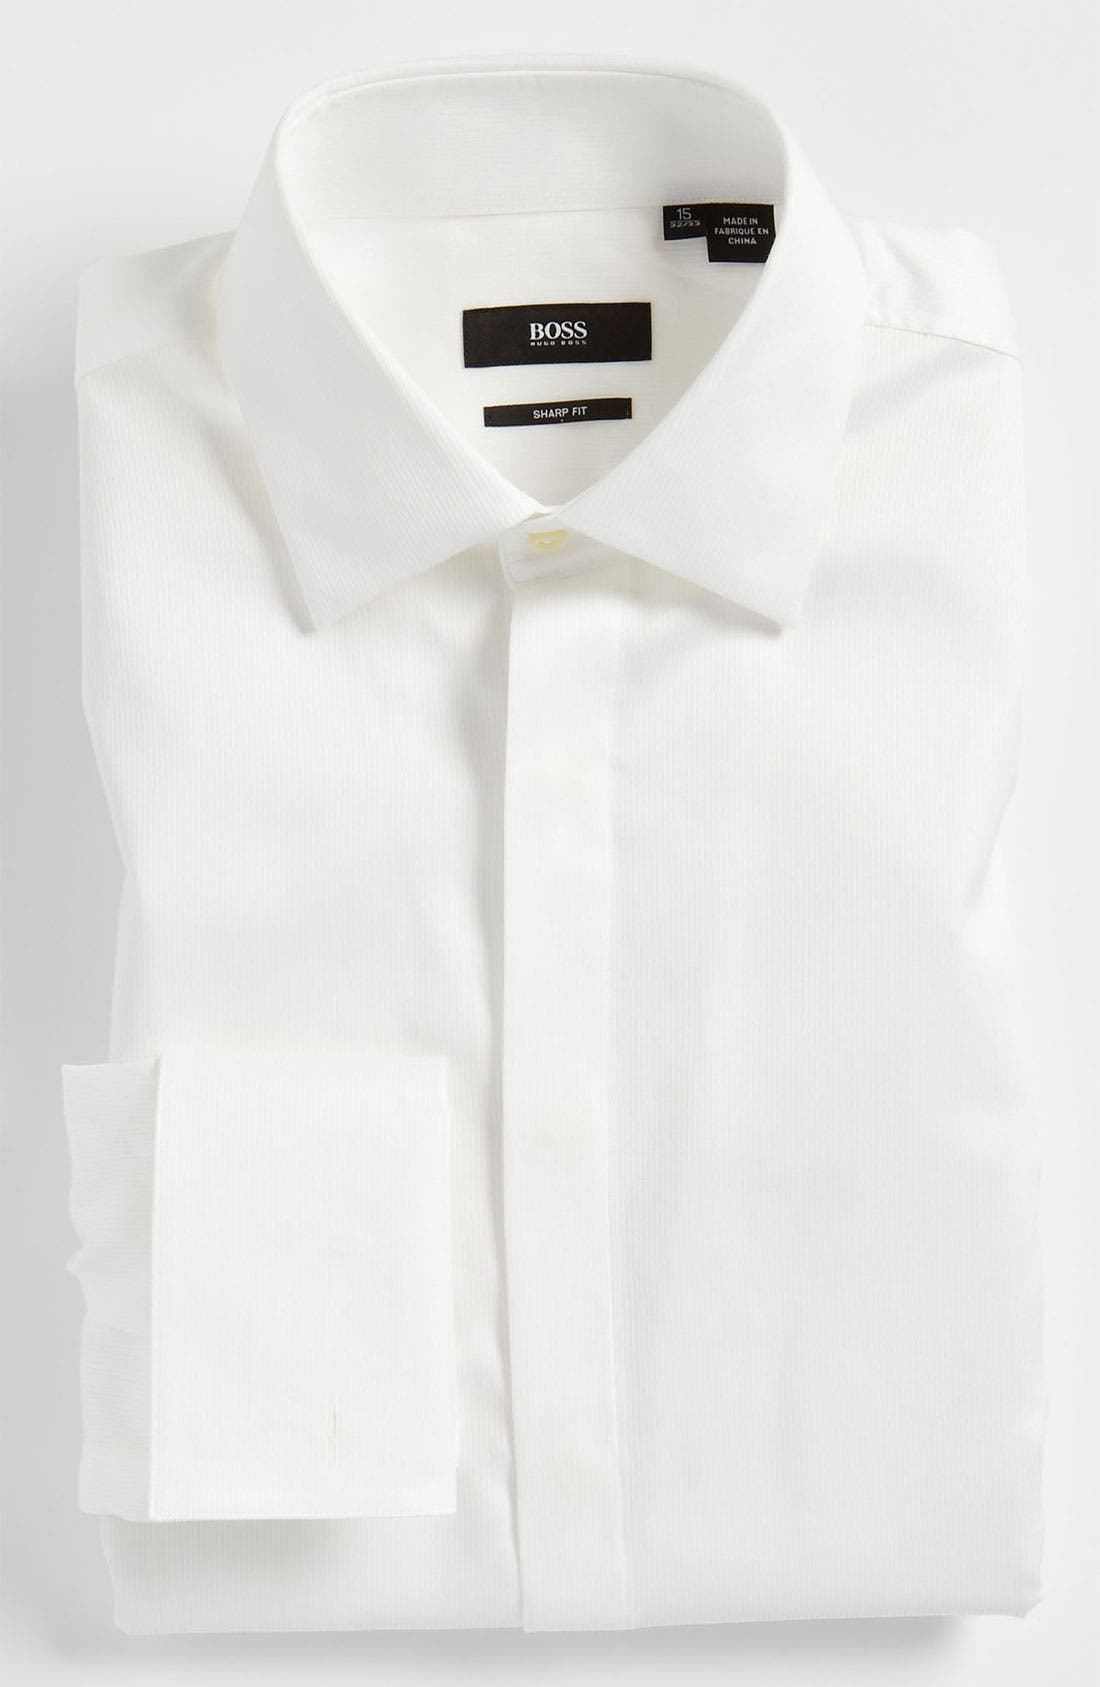 BOSS 'Marlyn' Sharp Fit Stripe French Cuff Tuxedo Shirt